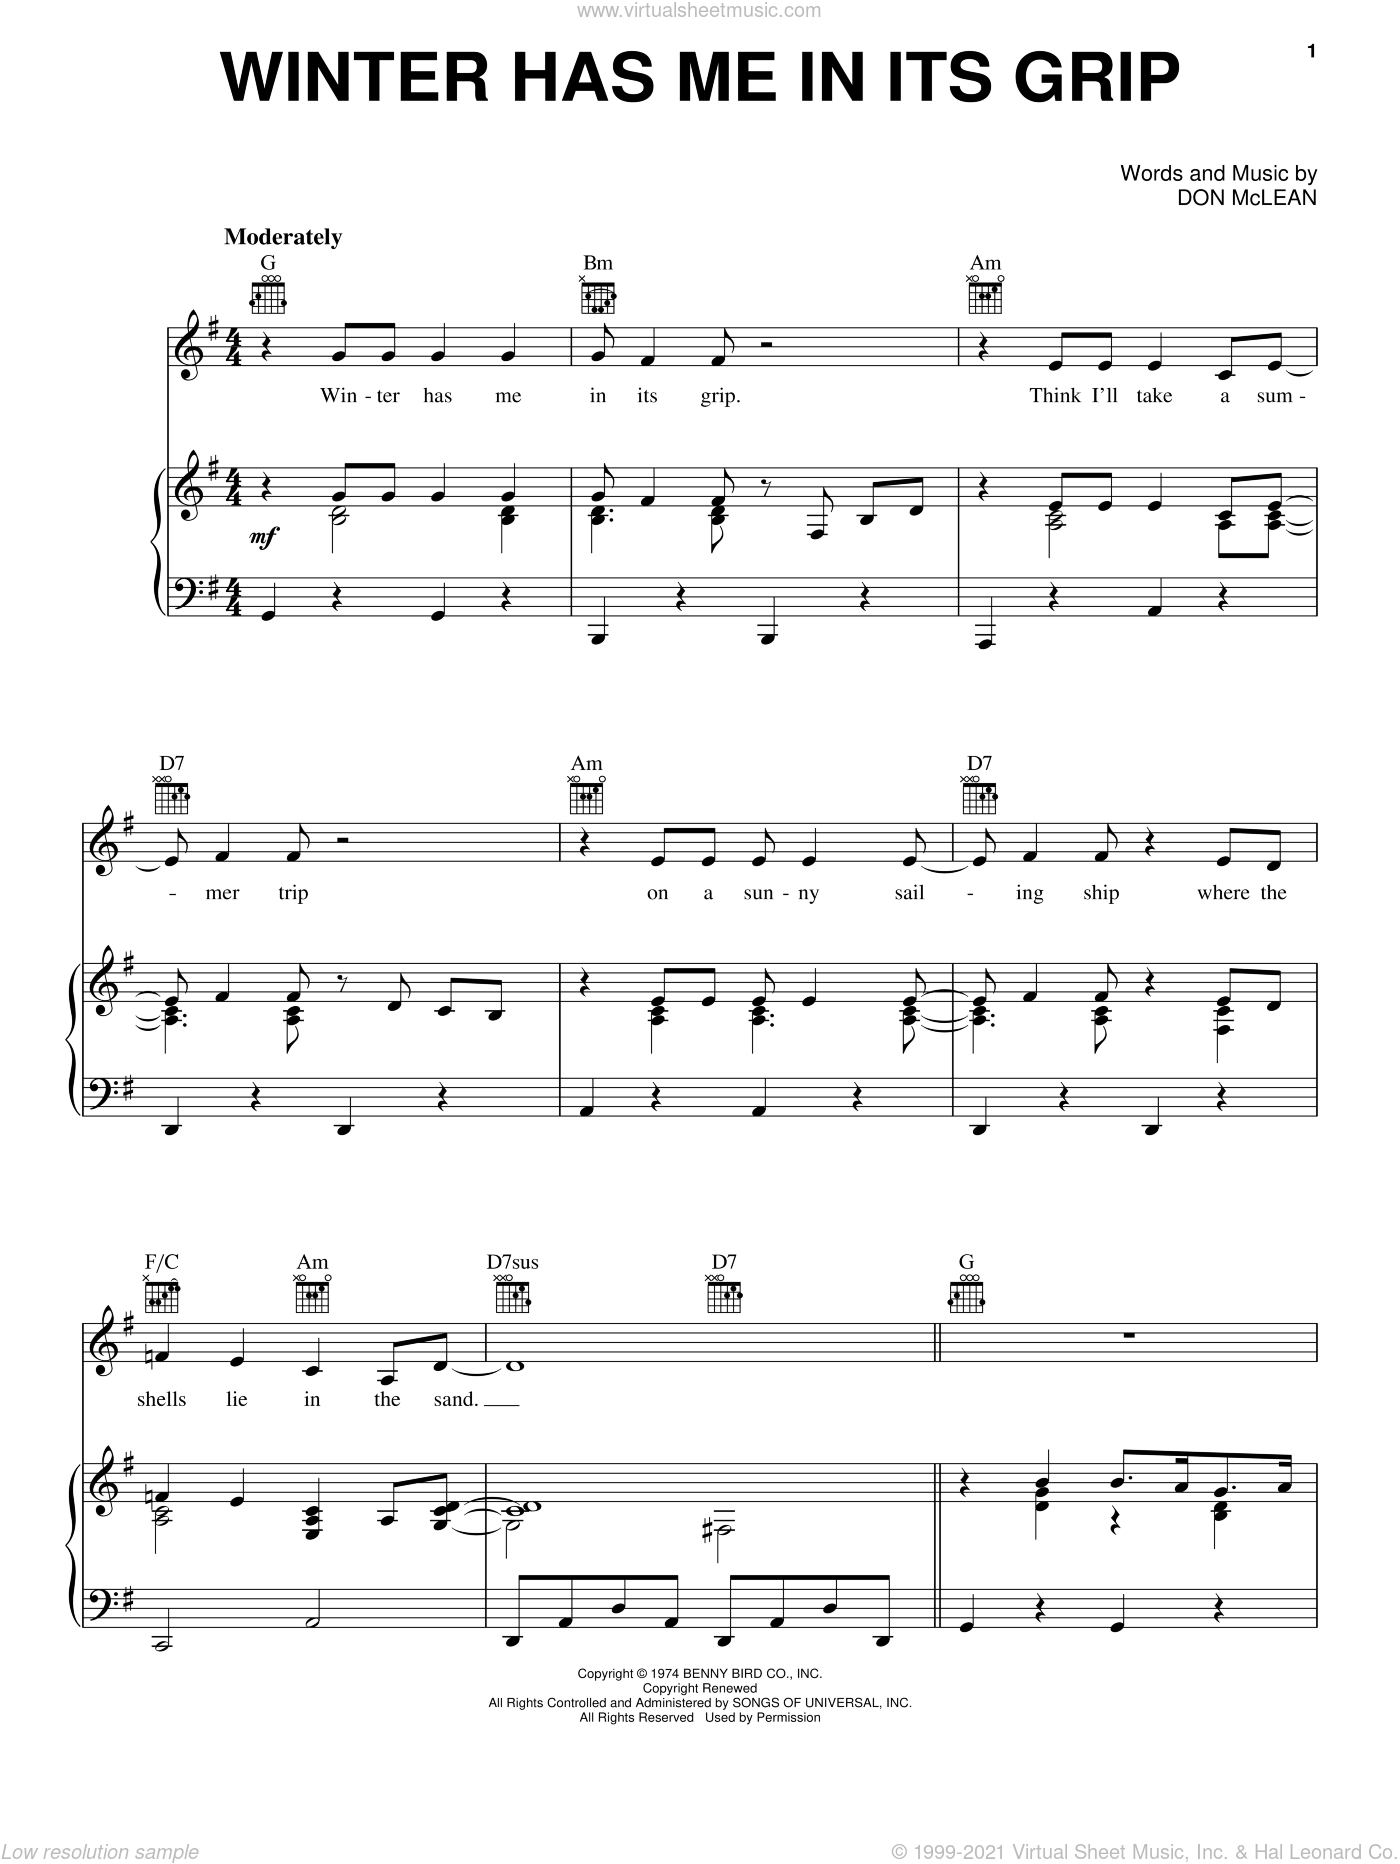 Winter Has Me In Its Grip sheet music for voice, piano or guitar by Don McLean. Score Image Preview.